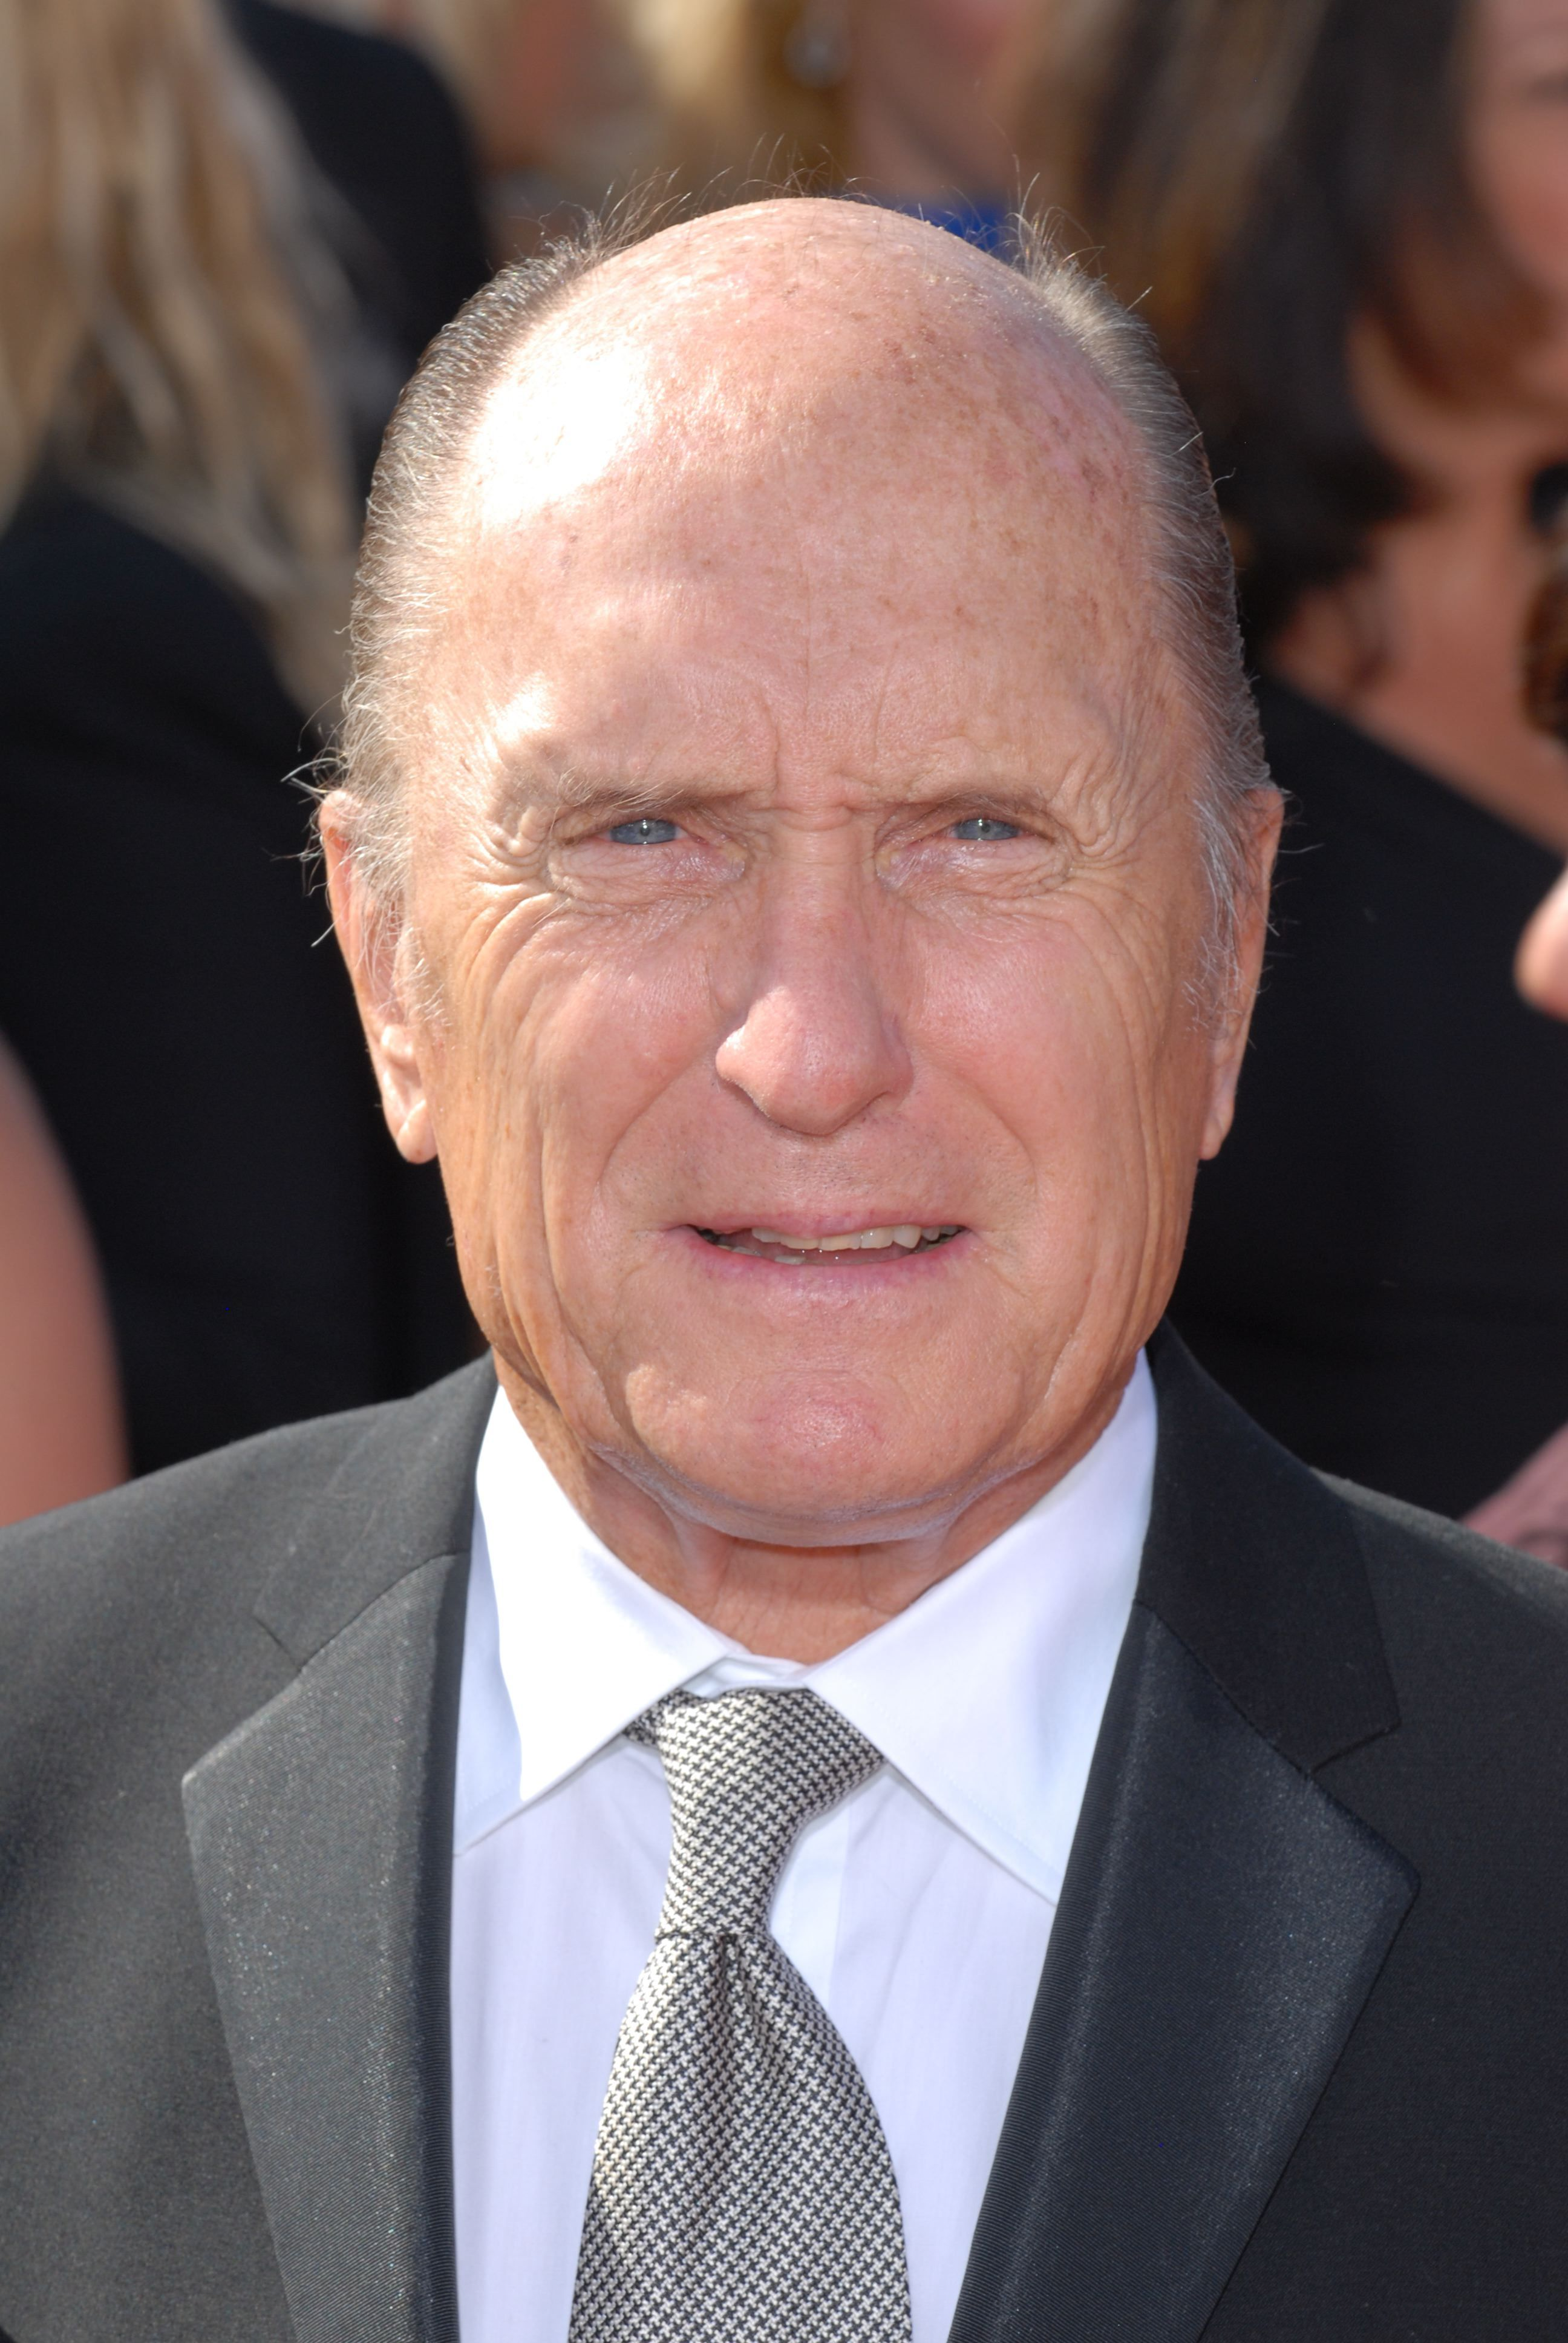 robert duvall 2017robert duvall young, robert duvall height, robert duvall oscar, robert duvall son, robert duvall movie, robert duvall linkedin, robert duvall instagram, robert duvall preacher, robert duvall 2017, robert duvall goldman, robert duvall official website, robert duvall net worth, robert duvall death, robert duvall apocalypse now, robert duvall godfather, robert duvall stalin, robert duvall 2016, robert duvall napalm in the morning, robert duvall filmography